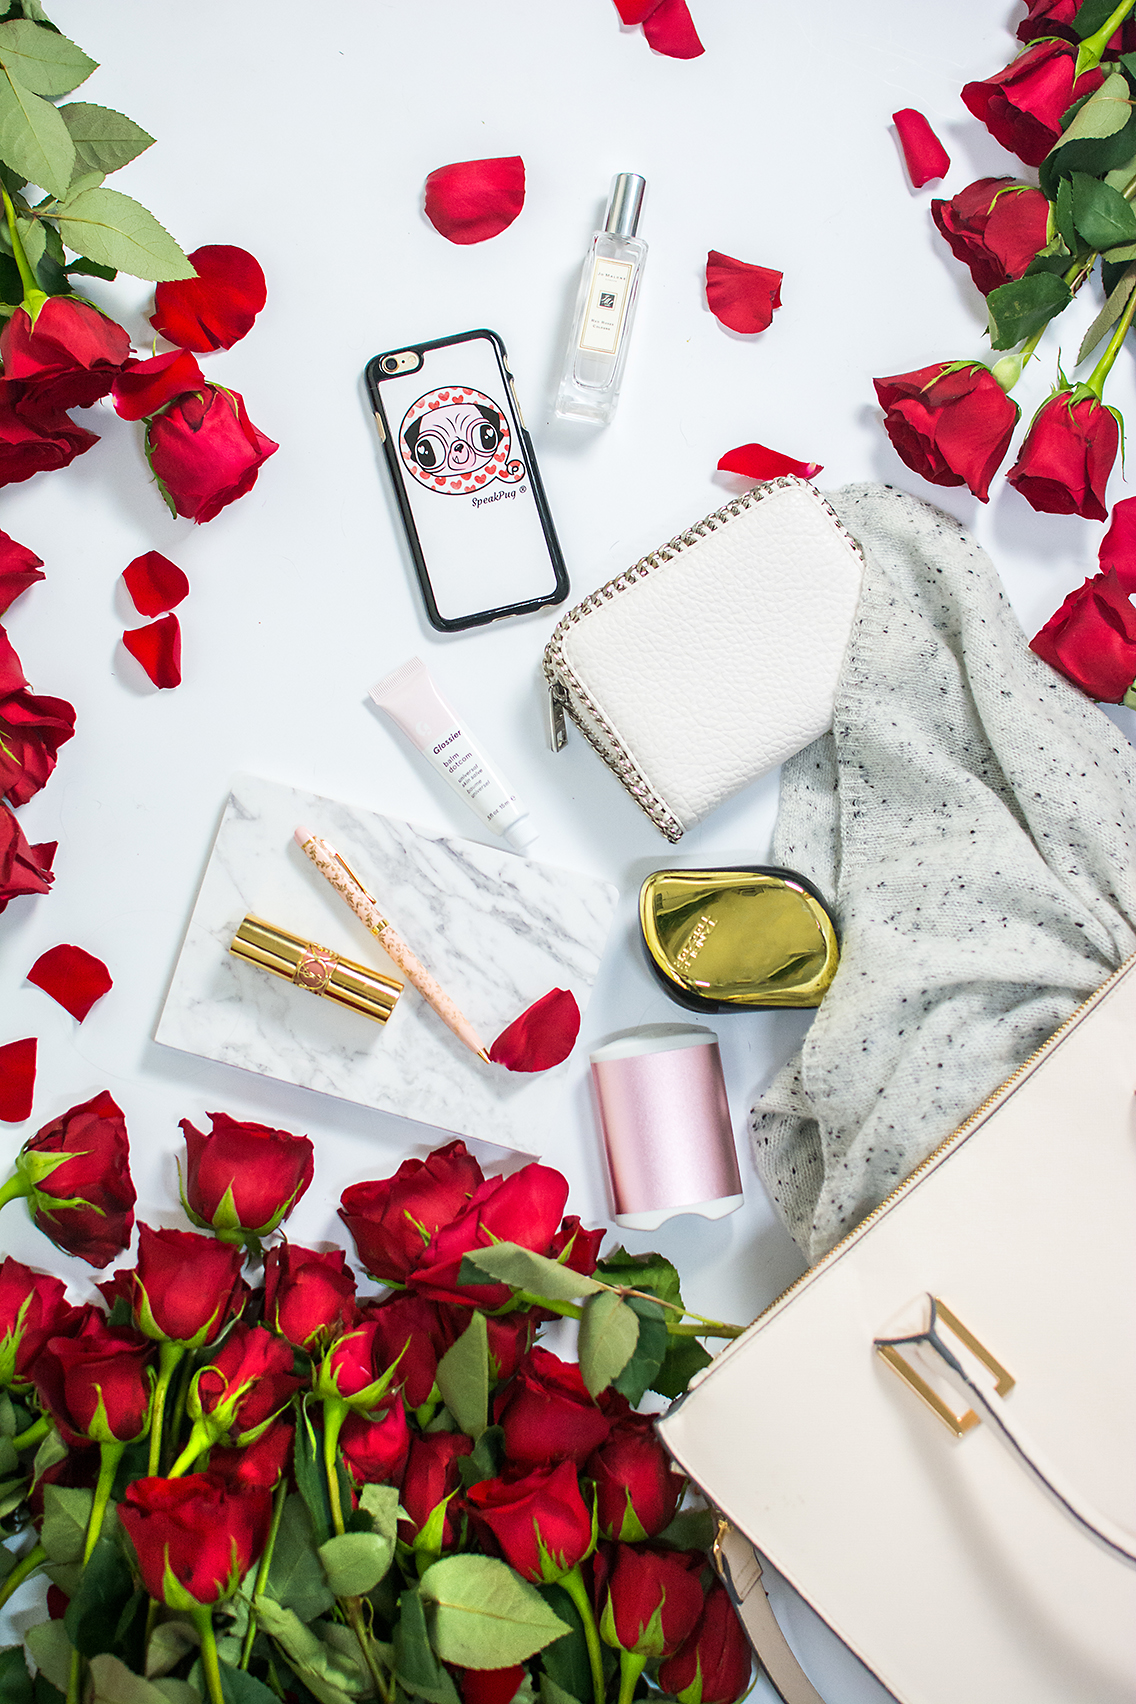 H&M Tote Jo Malone Red Roses Glossier Balm YSL Lips 19